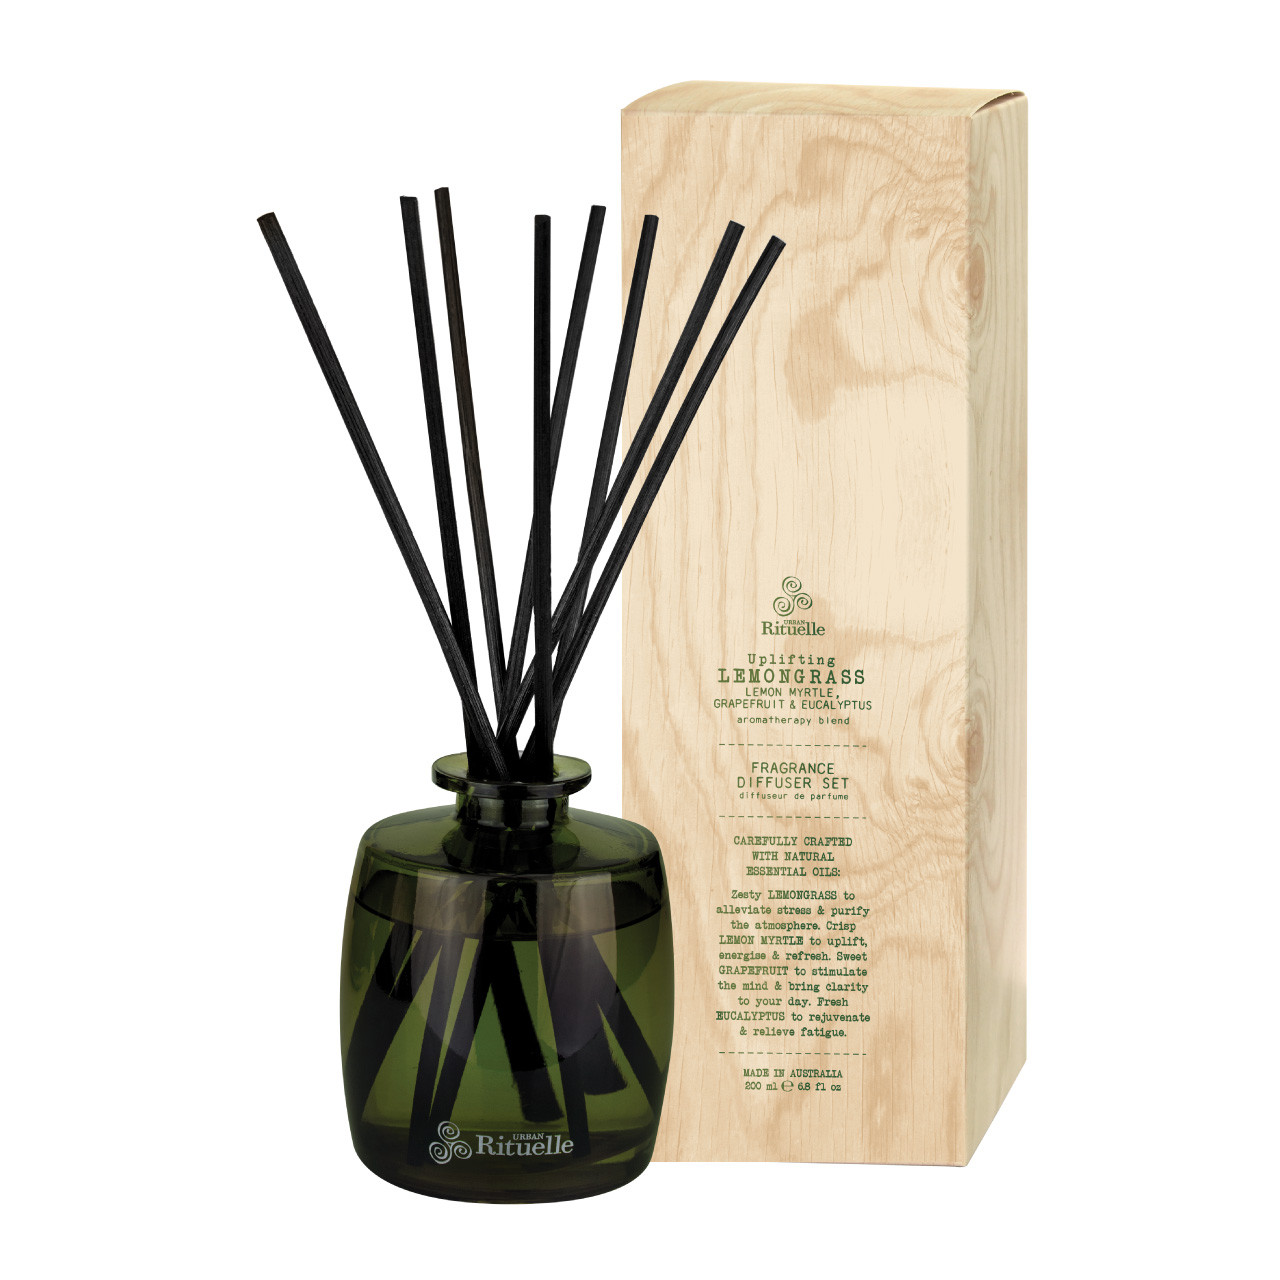 Flourish Organics - Fragrance Diffuser Set - Lemongrass - Urban Rituelle